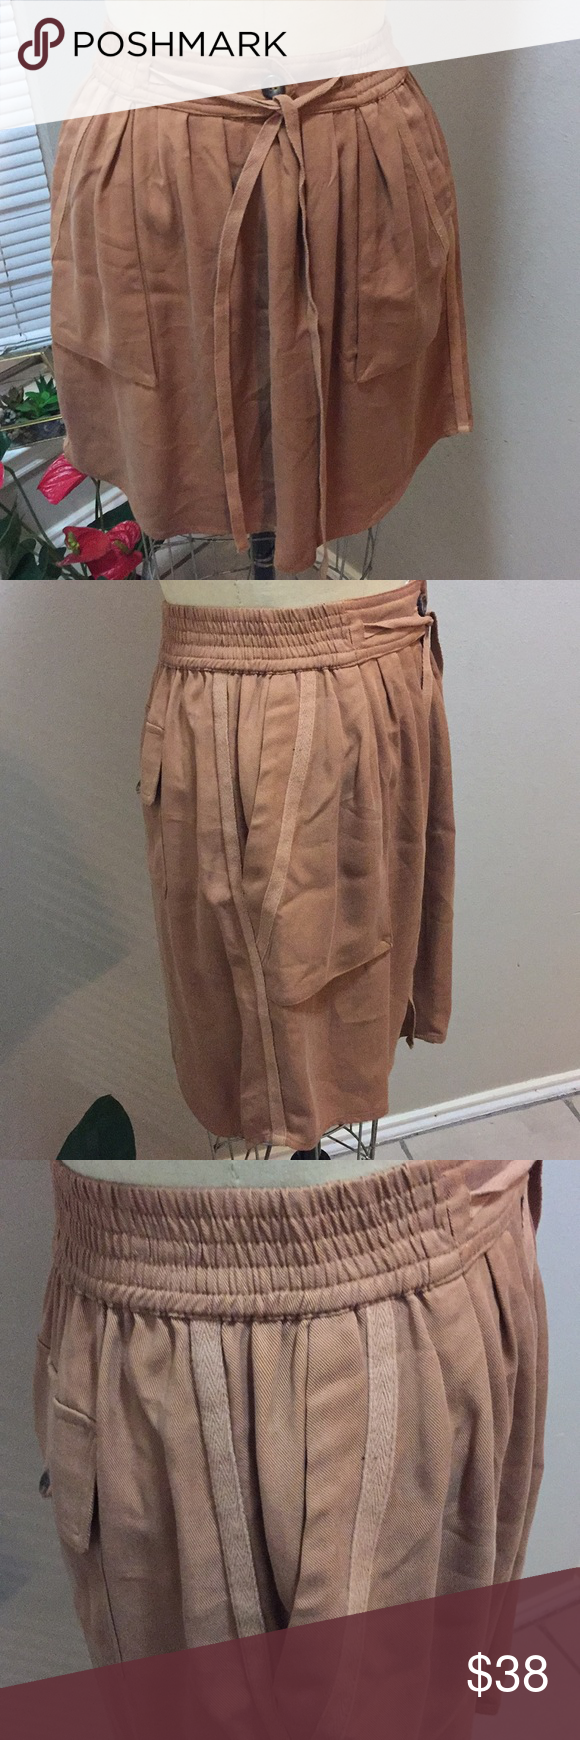 """Anthropologie Mauve Mini Skirt ♠️ two front and two back pockets  ♠️ waist 13 1/2"""" flat ♠️ 19"""" long ♠️ great condition Anthropologie Skirts Mini"""